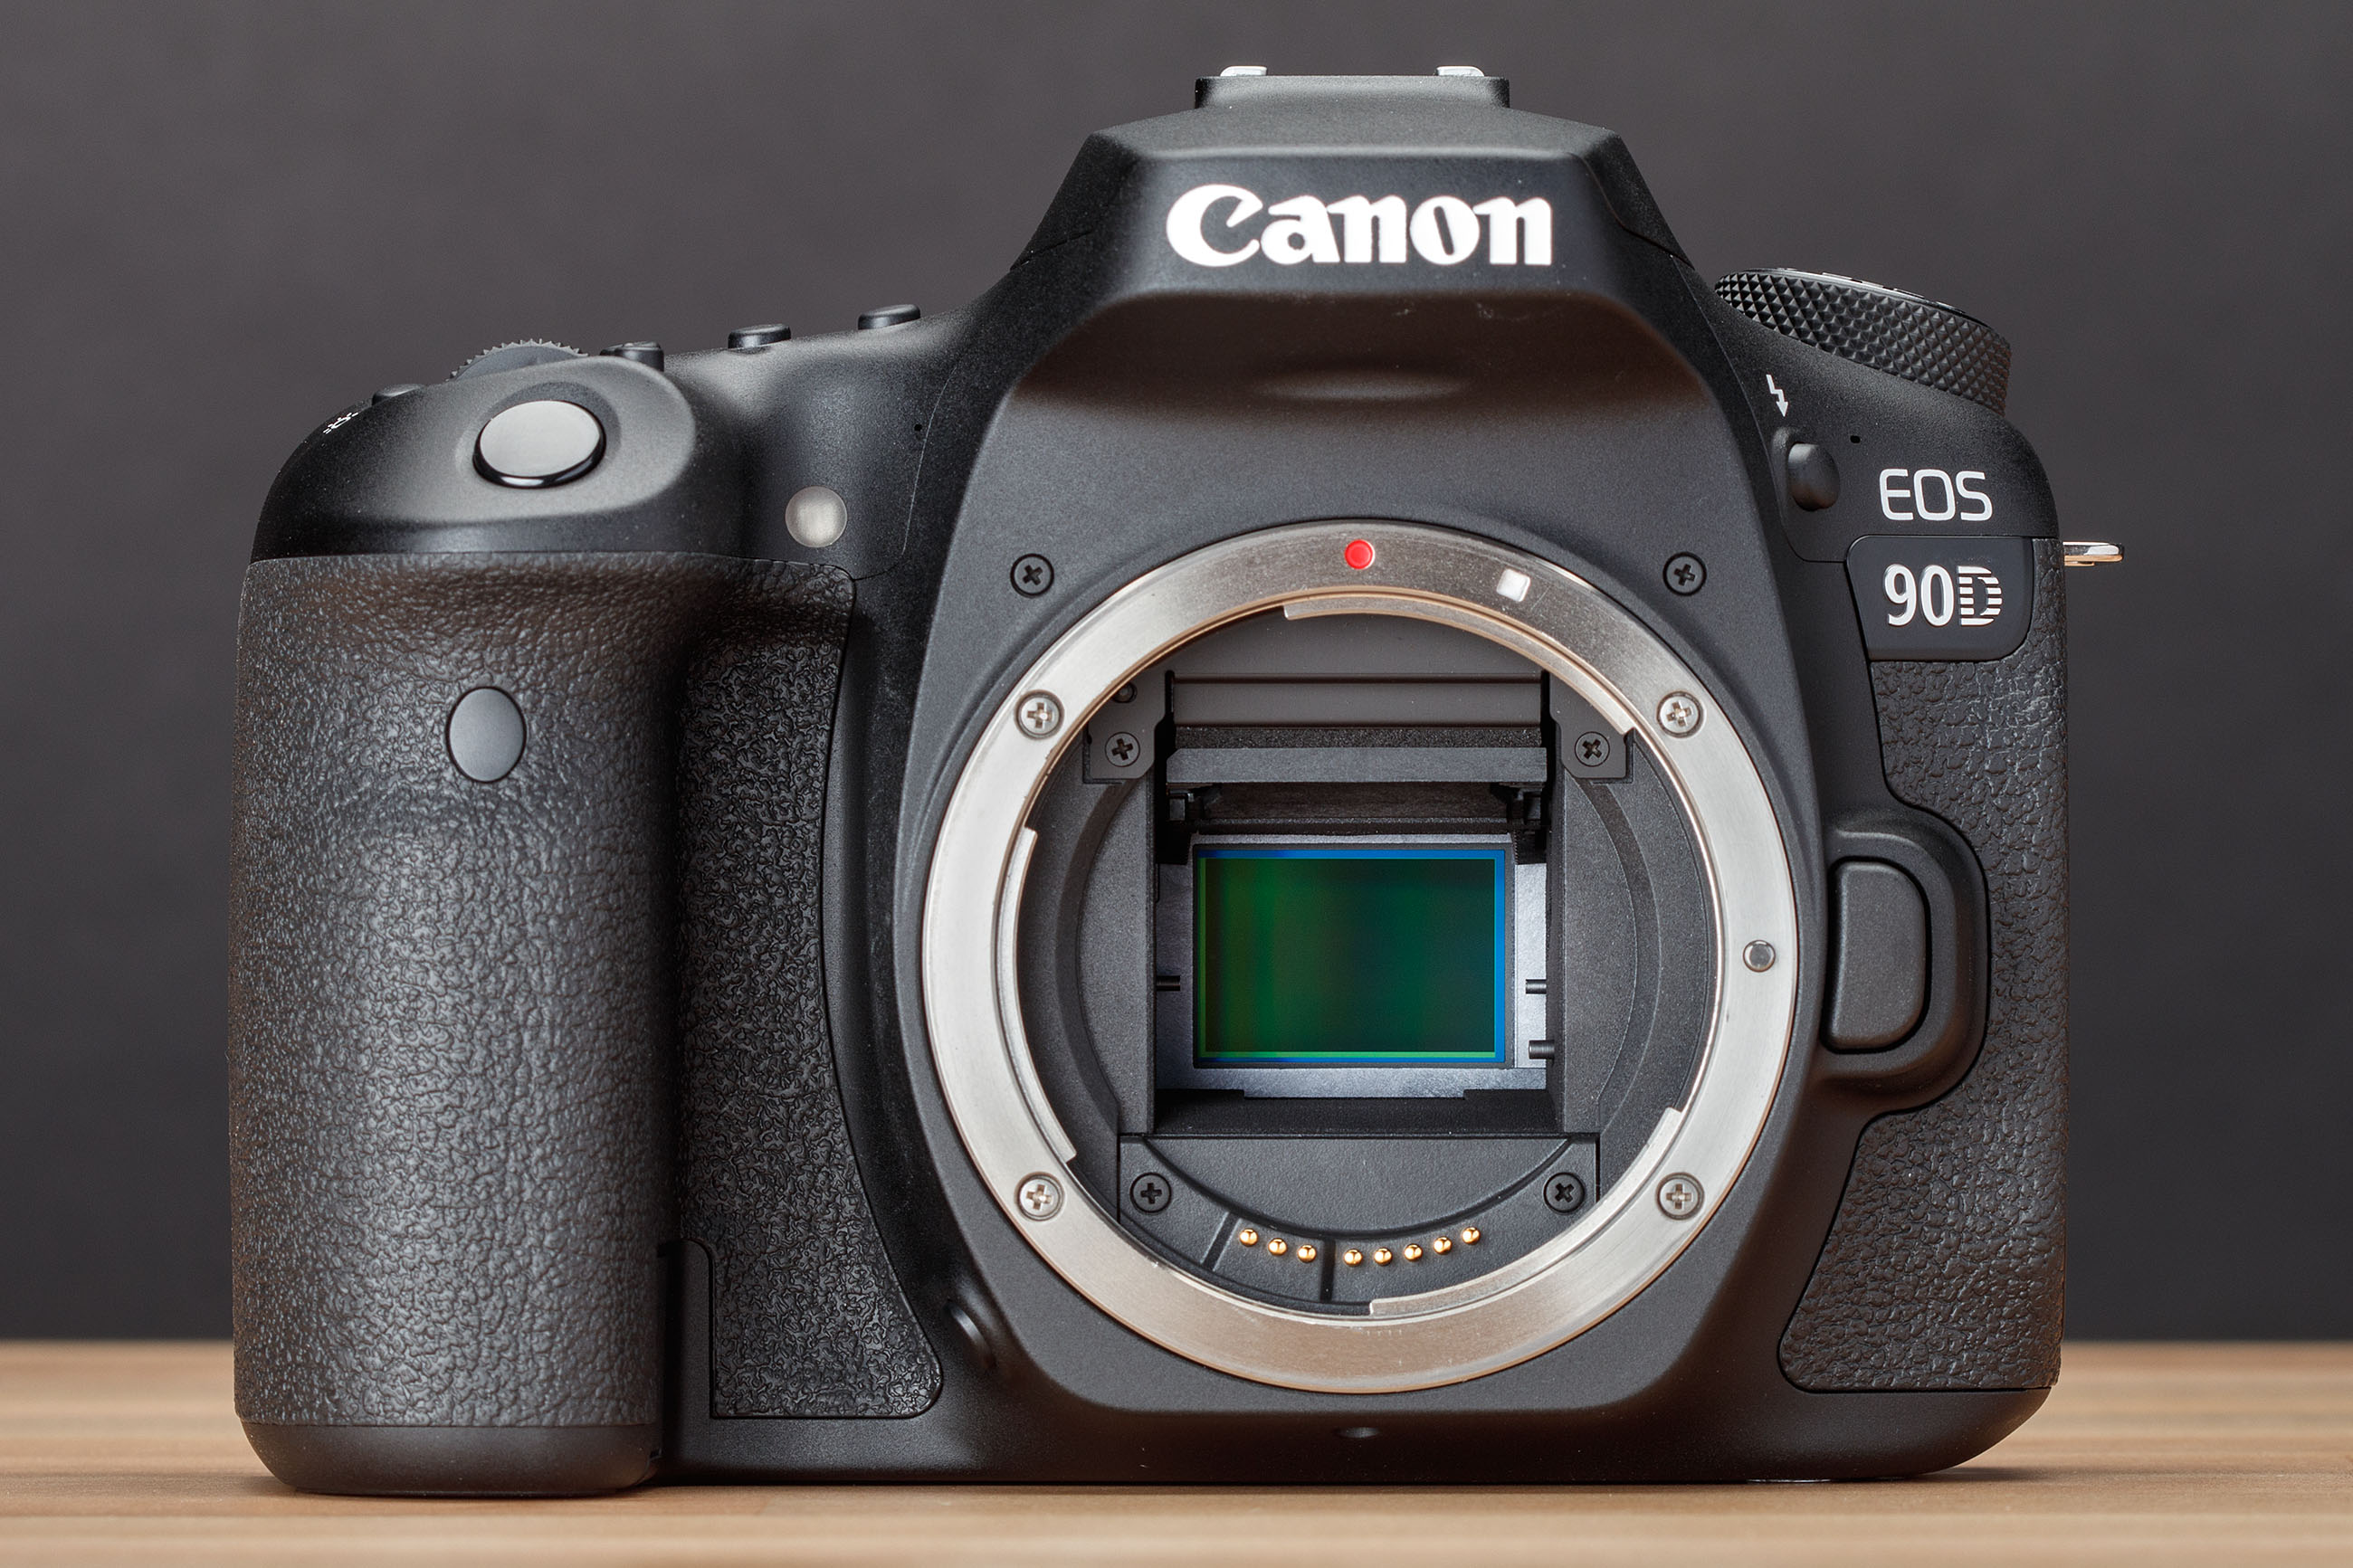 Canon Eos 90d Deals Cheapest Price Canon Rumors Co